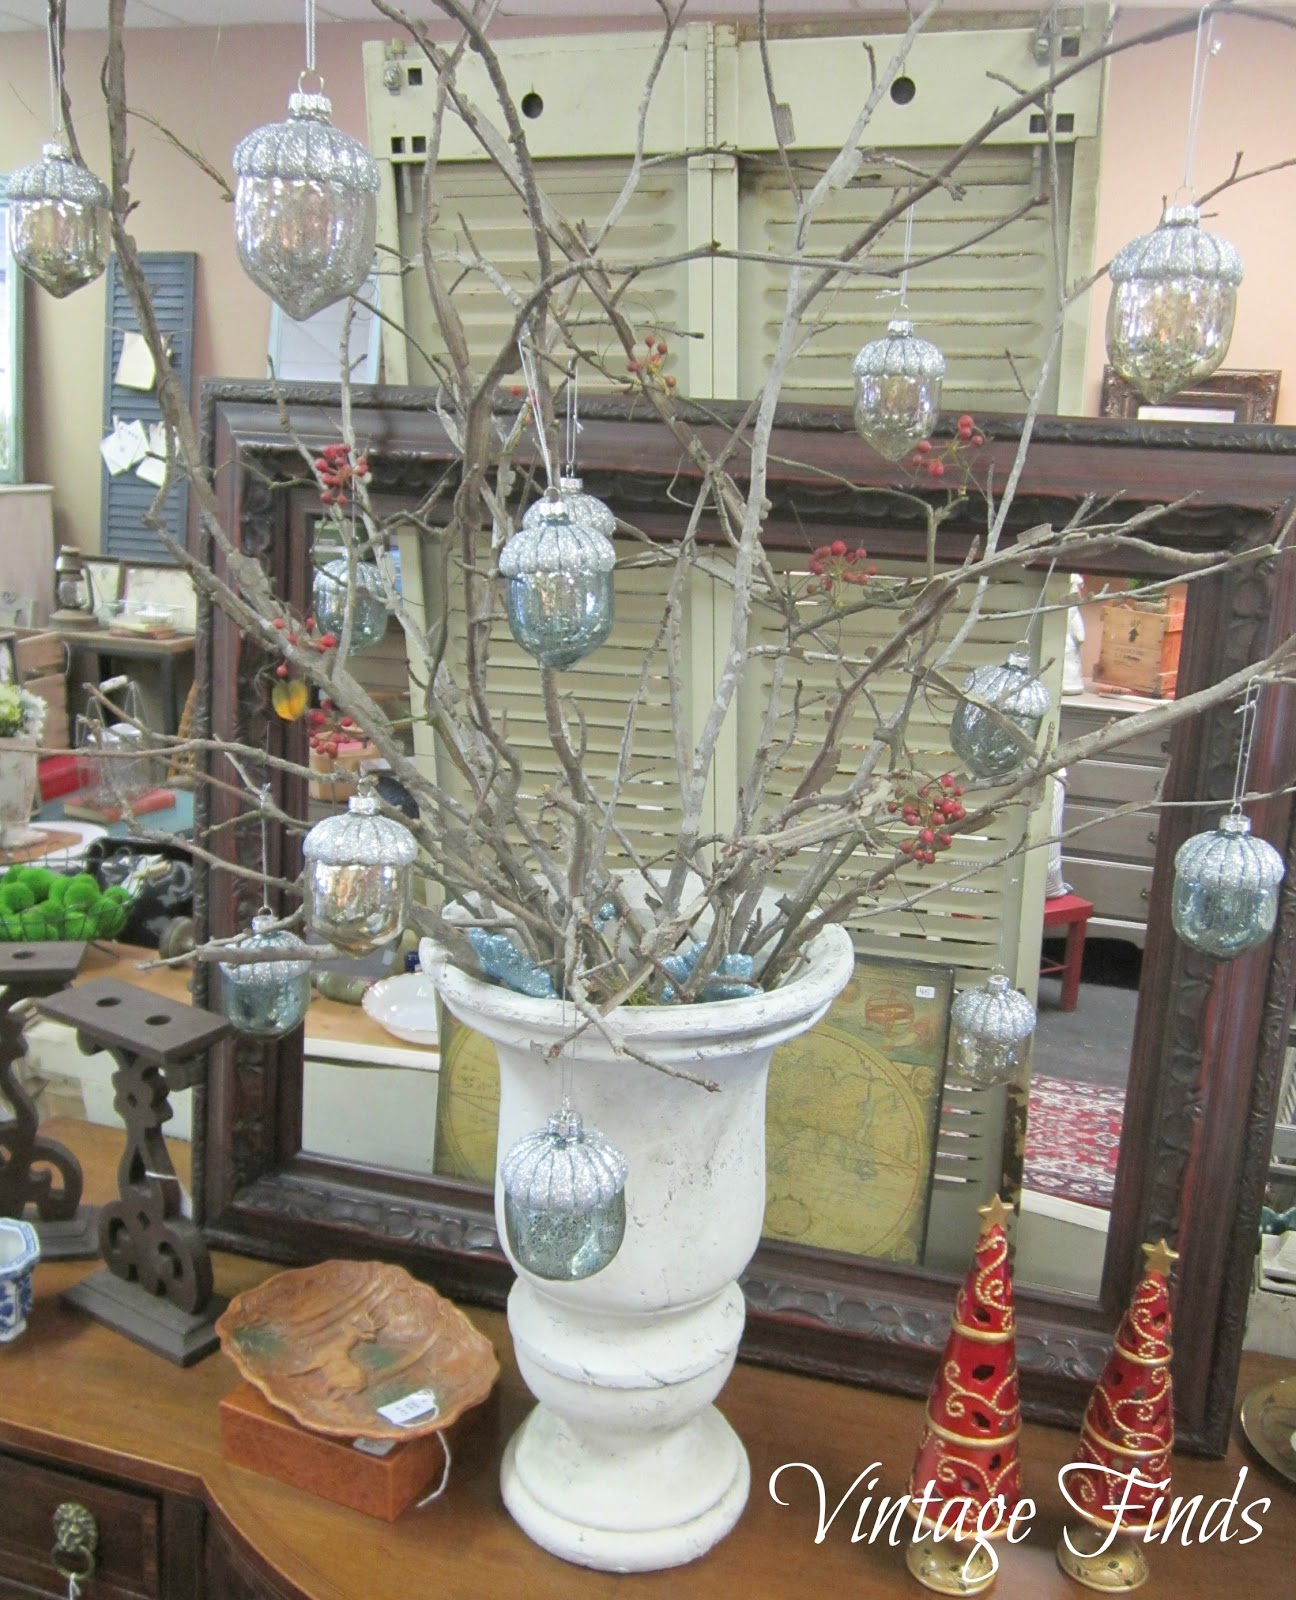 Drama christmas ornaments - Gather Up Branches From Your Yard Or The Woods To Fill An Urn Planter Or Tall Container Then Hang 10 Or More Christmas Ornaments On The Branches Until